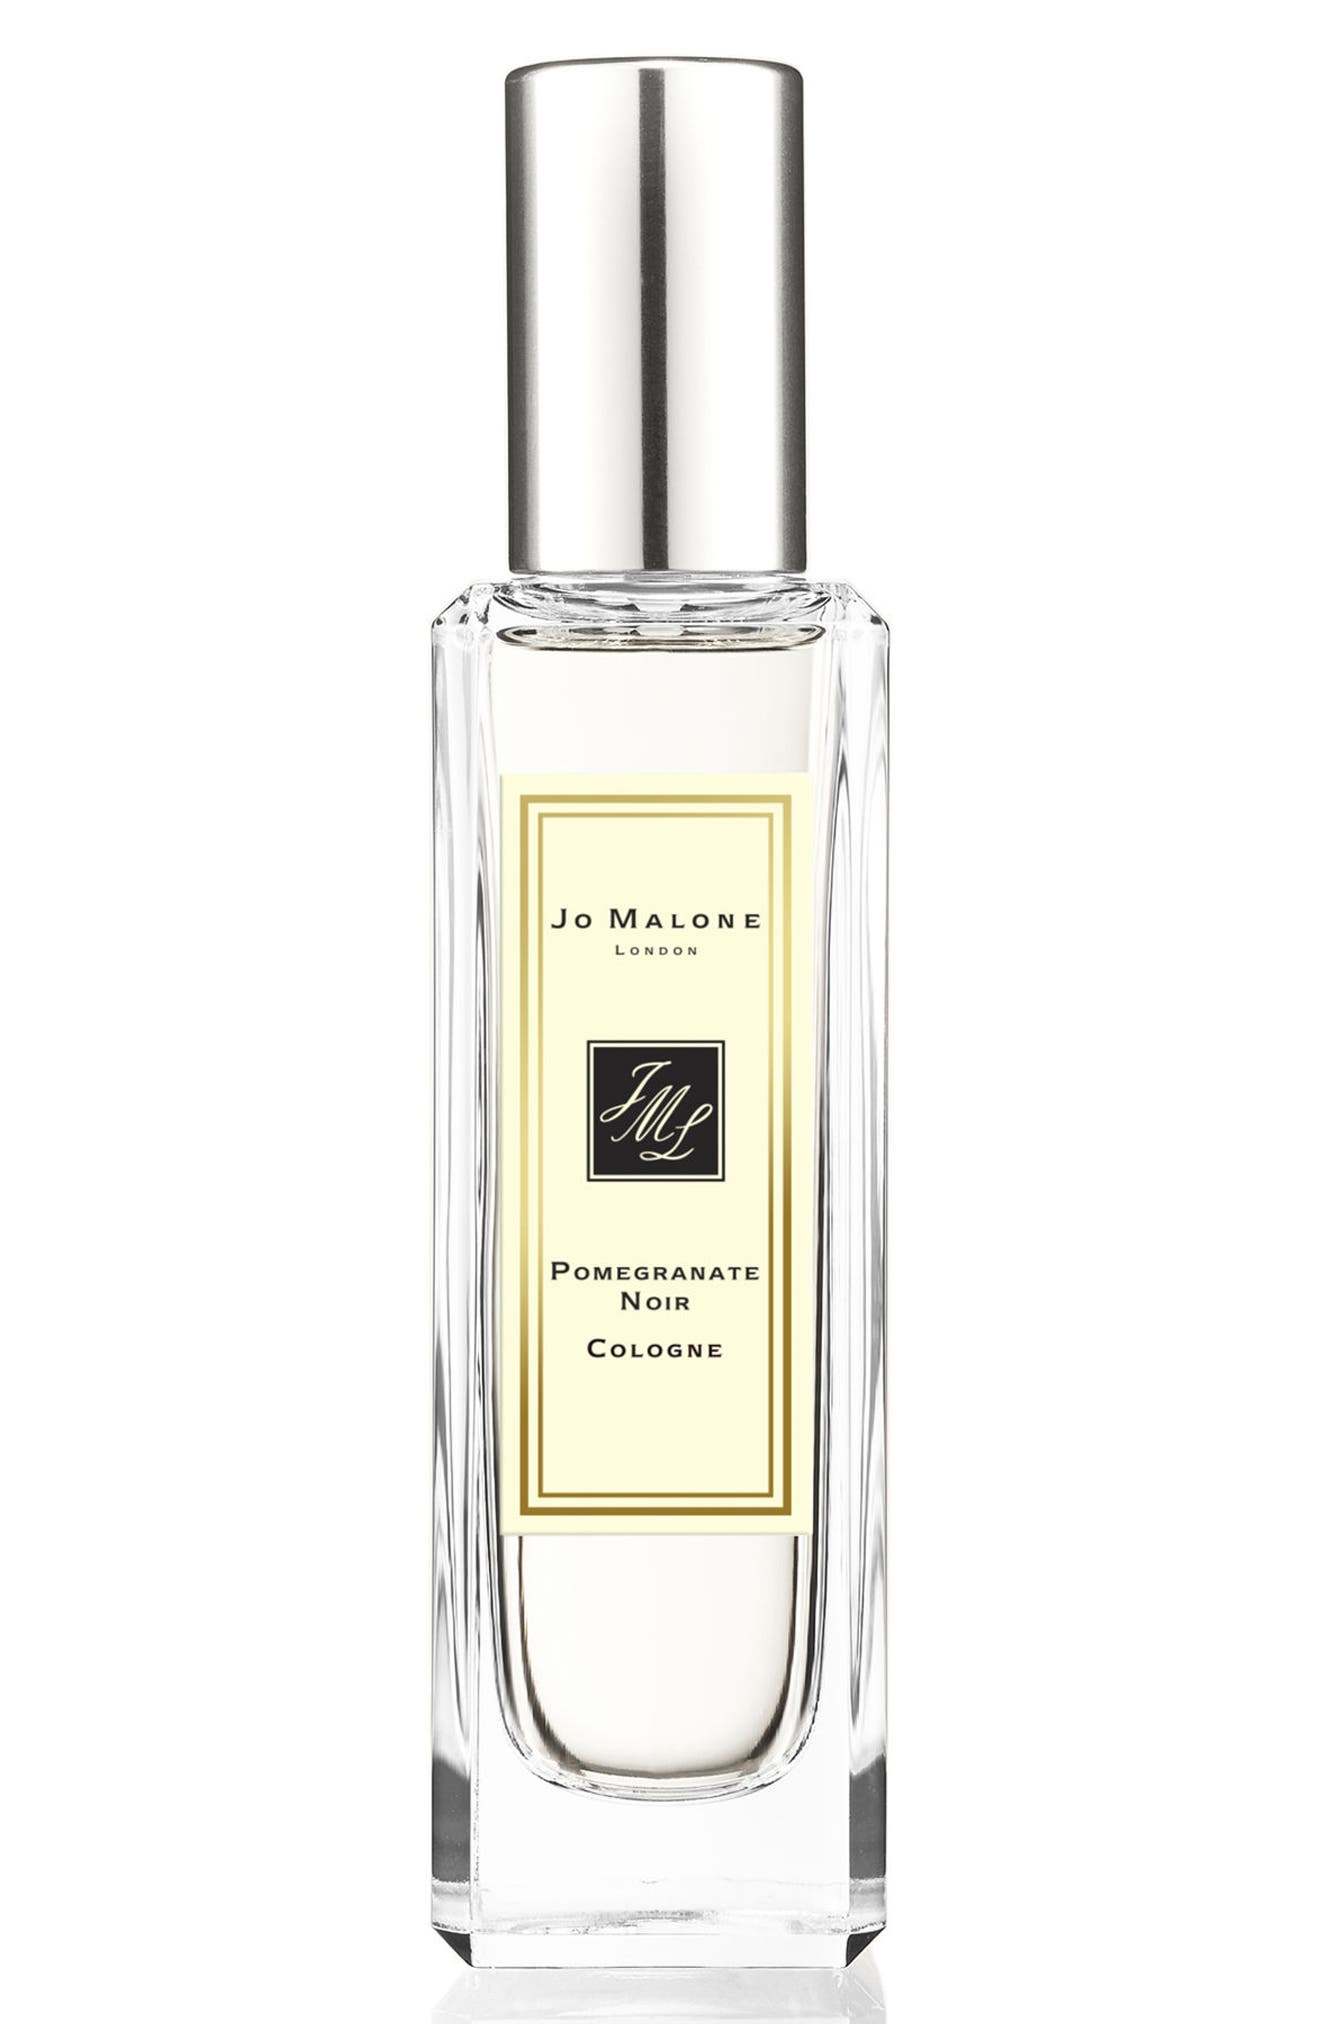 Jo Malone London™ 'Pomegranate Noir' Cologne (1 oz.)